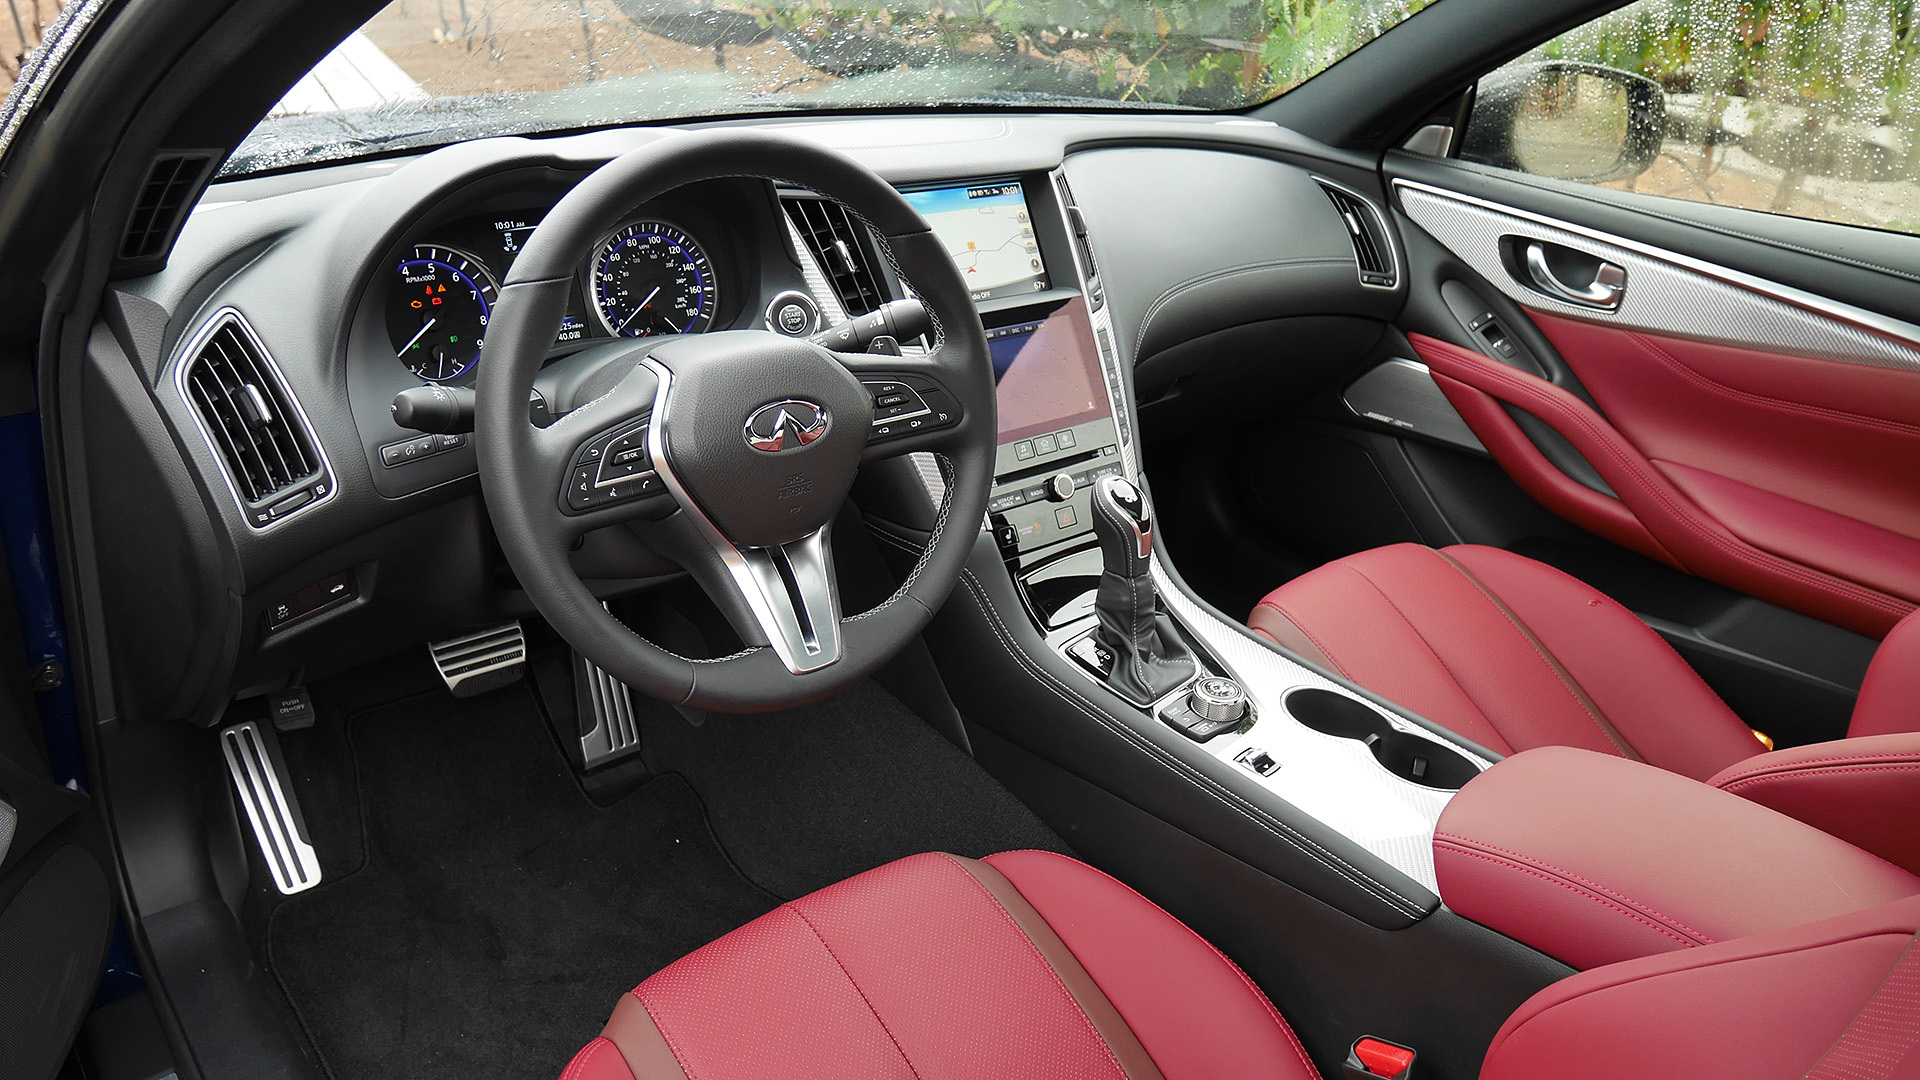 2017 Infiniti Q60 Interior Driver Steering And Dash (Photo 2 of 32)